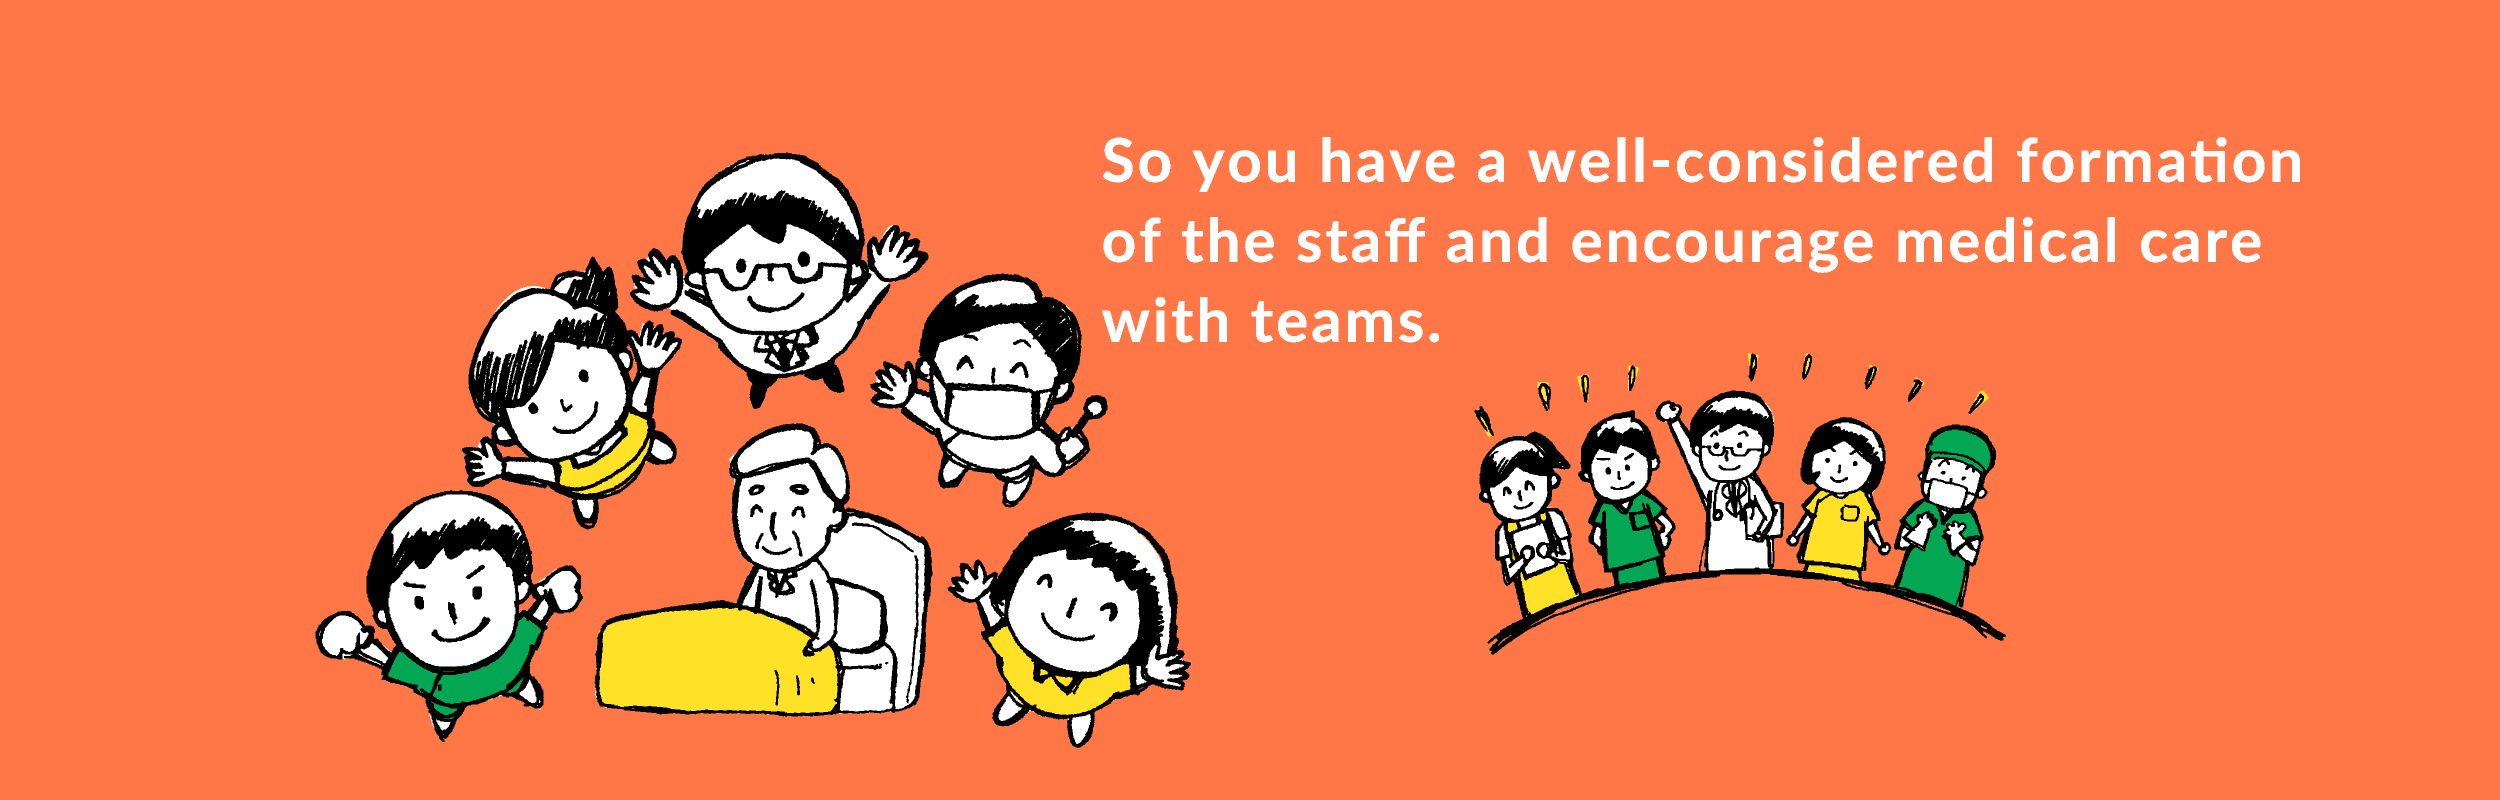 So you have a well-considered formation of the staff and encourage medical care with teams.